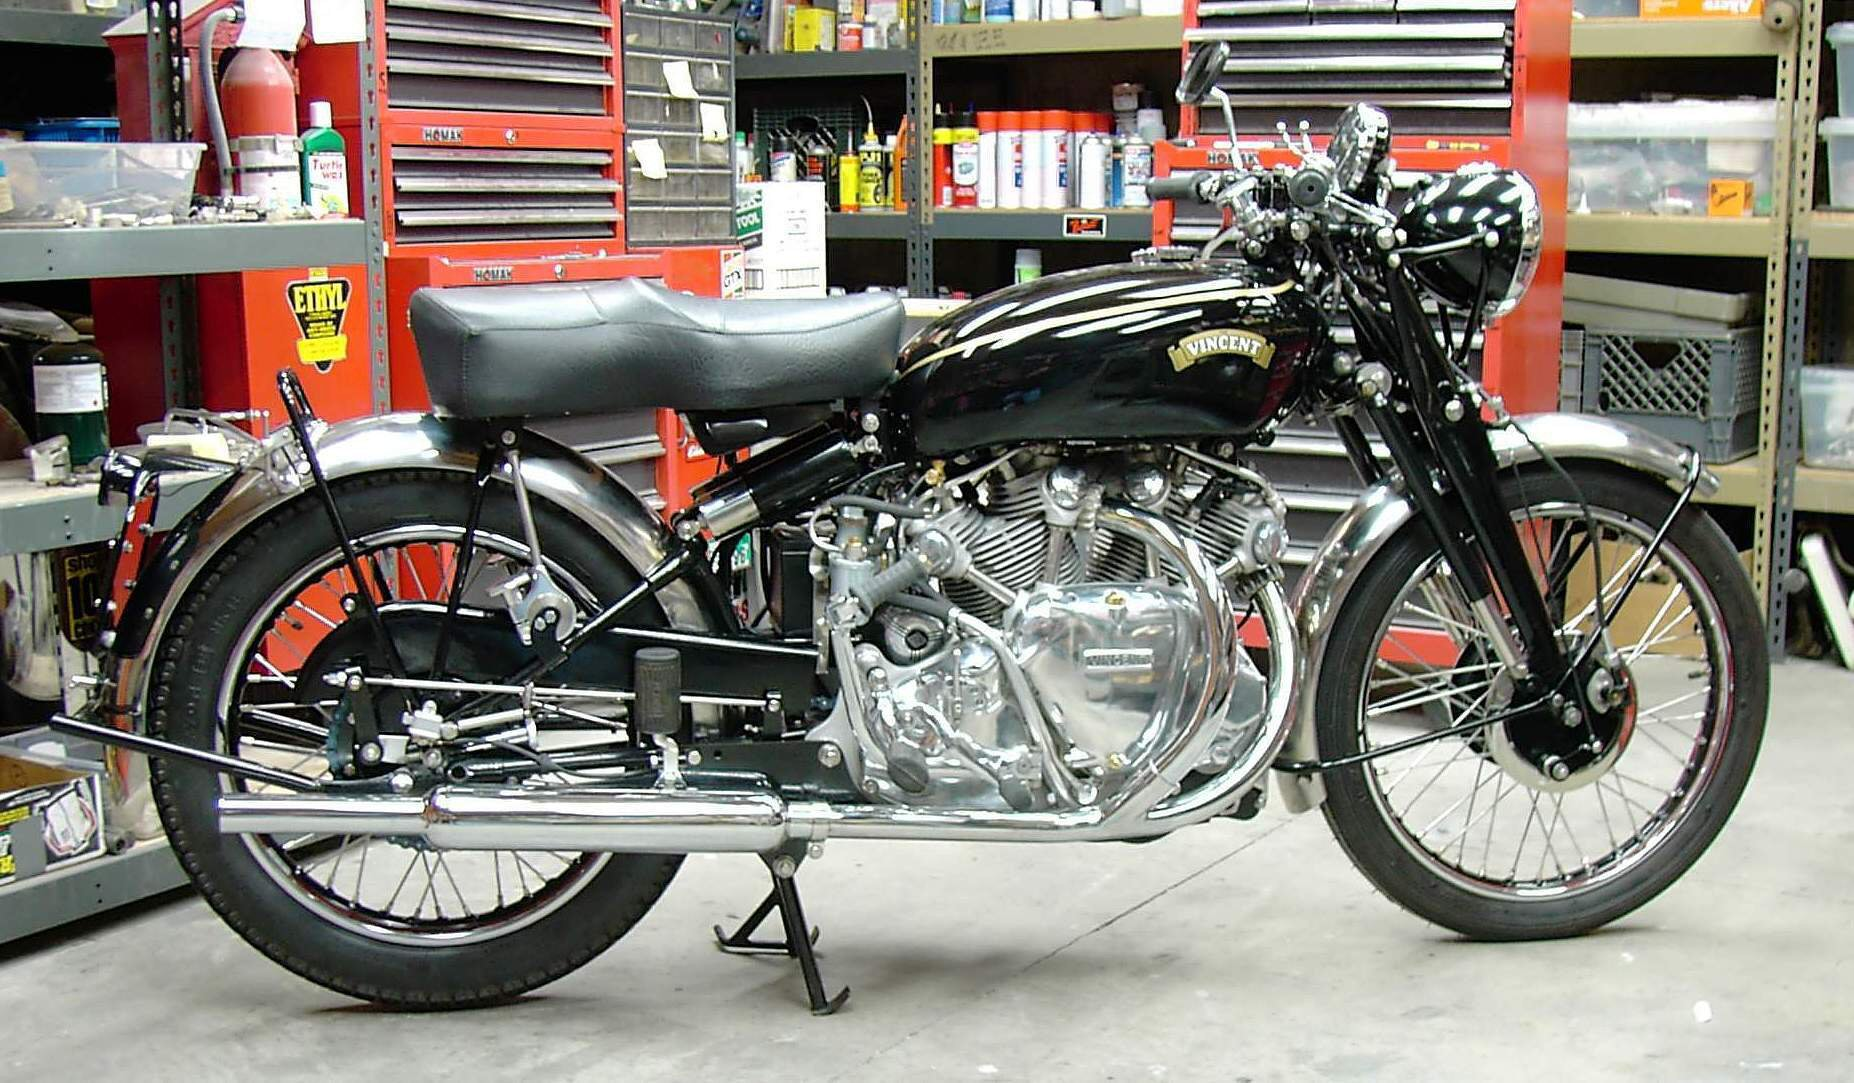 Gmc Tires Charlotte >> Charlotte Motorcycle Parts By Owner Craigslist | Autos Post